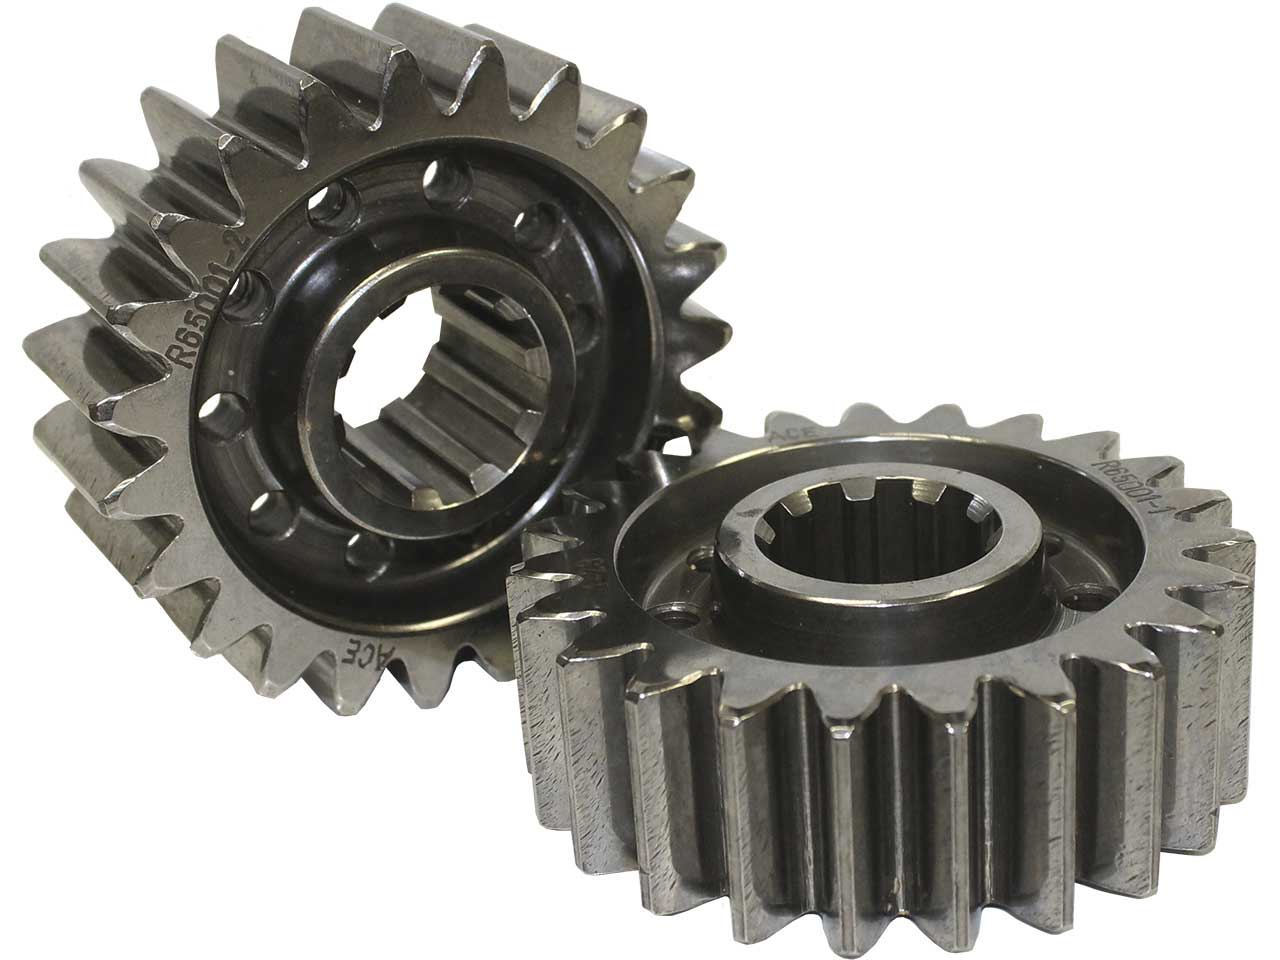 Picture of PEM Premium Lightweight Quick Change Gear Set #33A - 6.94(4.11)/8.20(4.86)